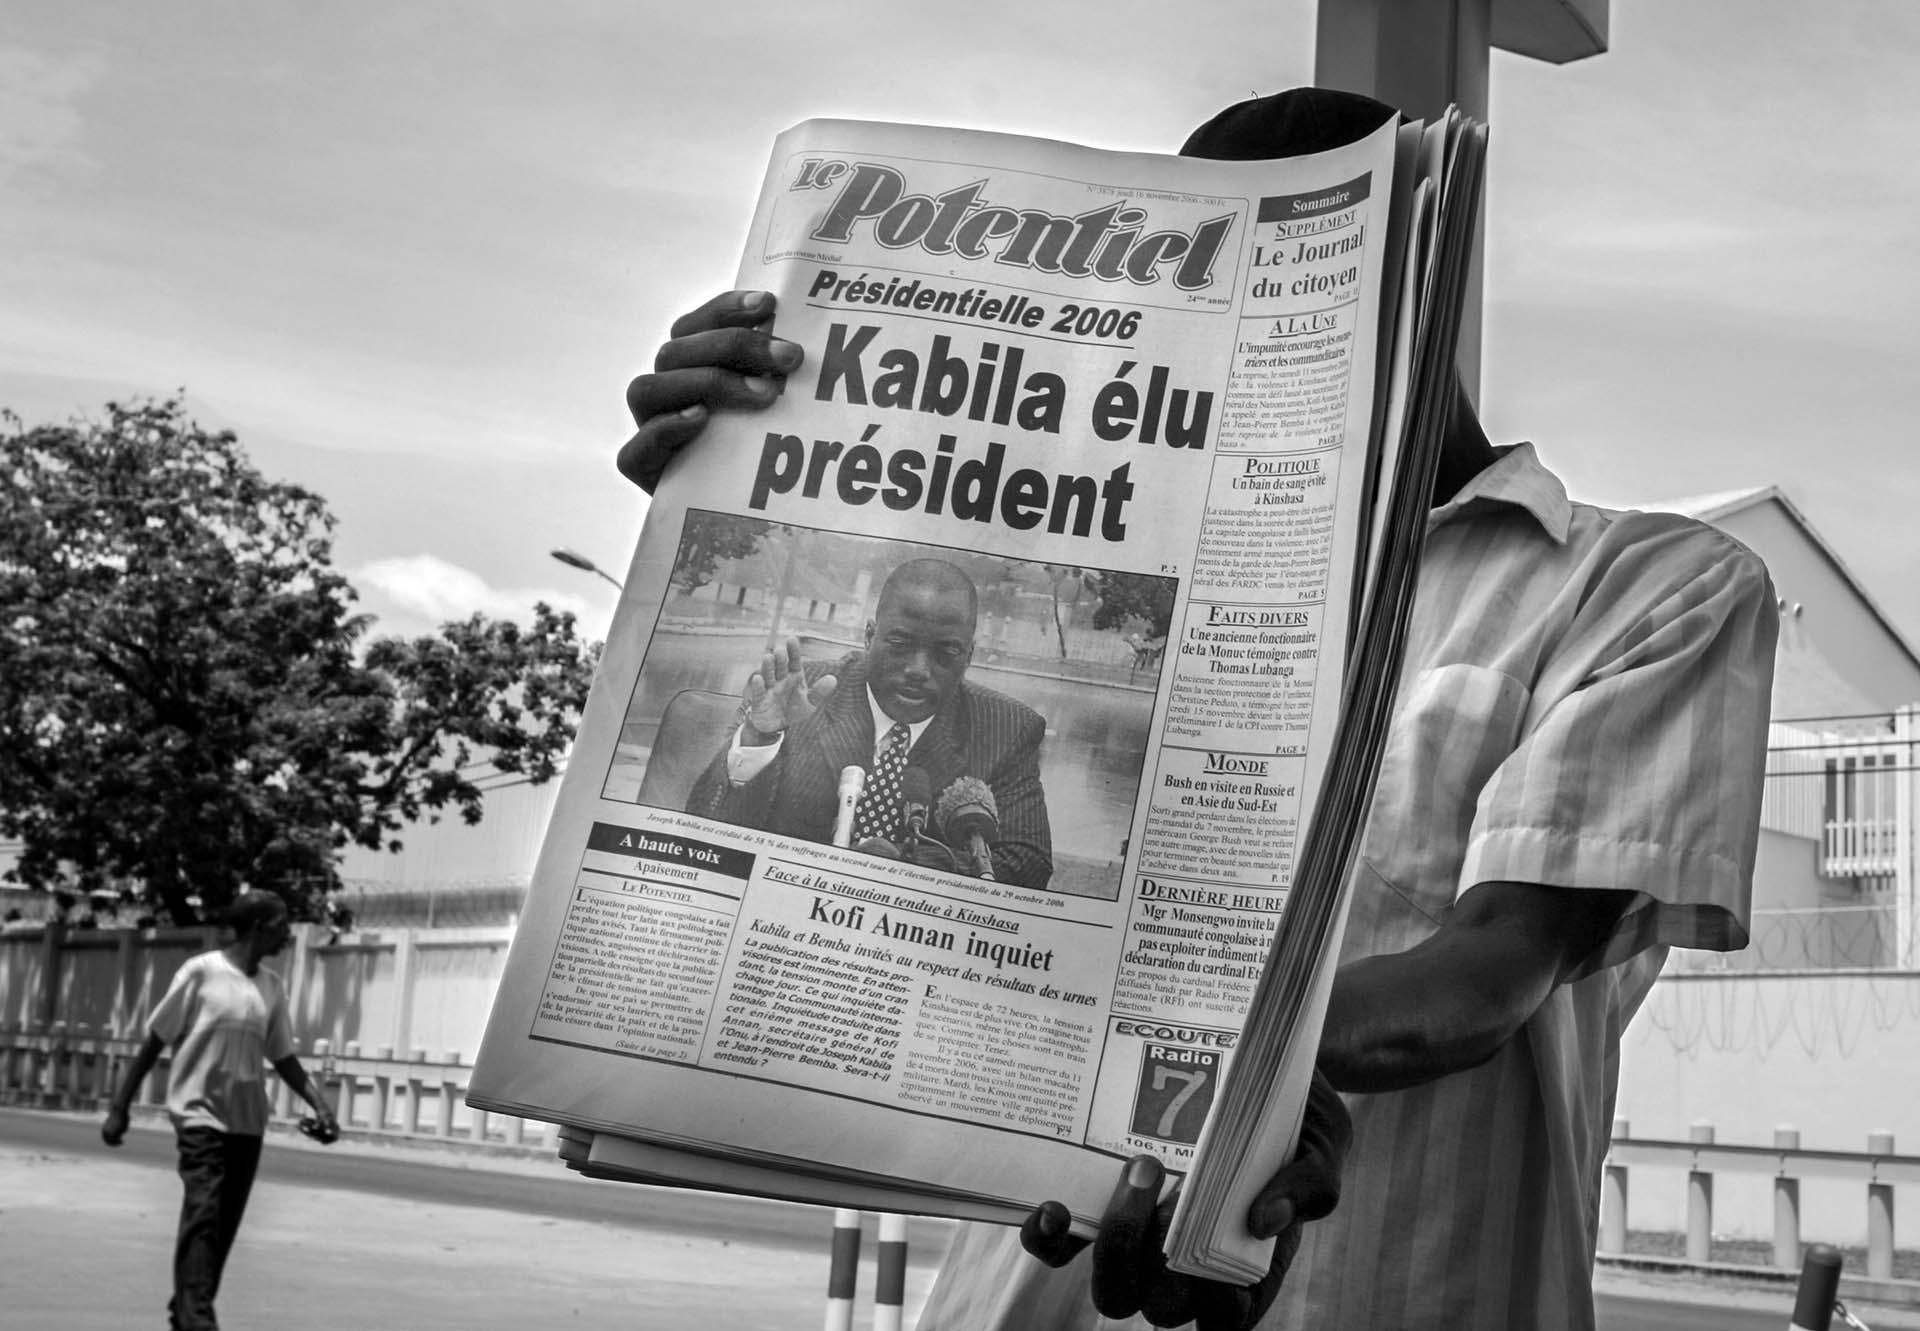 Joseph Kabila is announced as a winner of the presidential election.